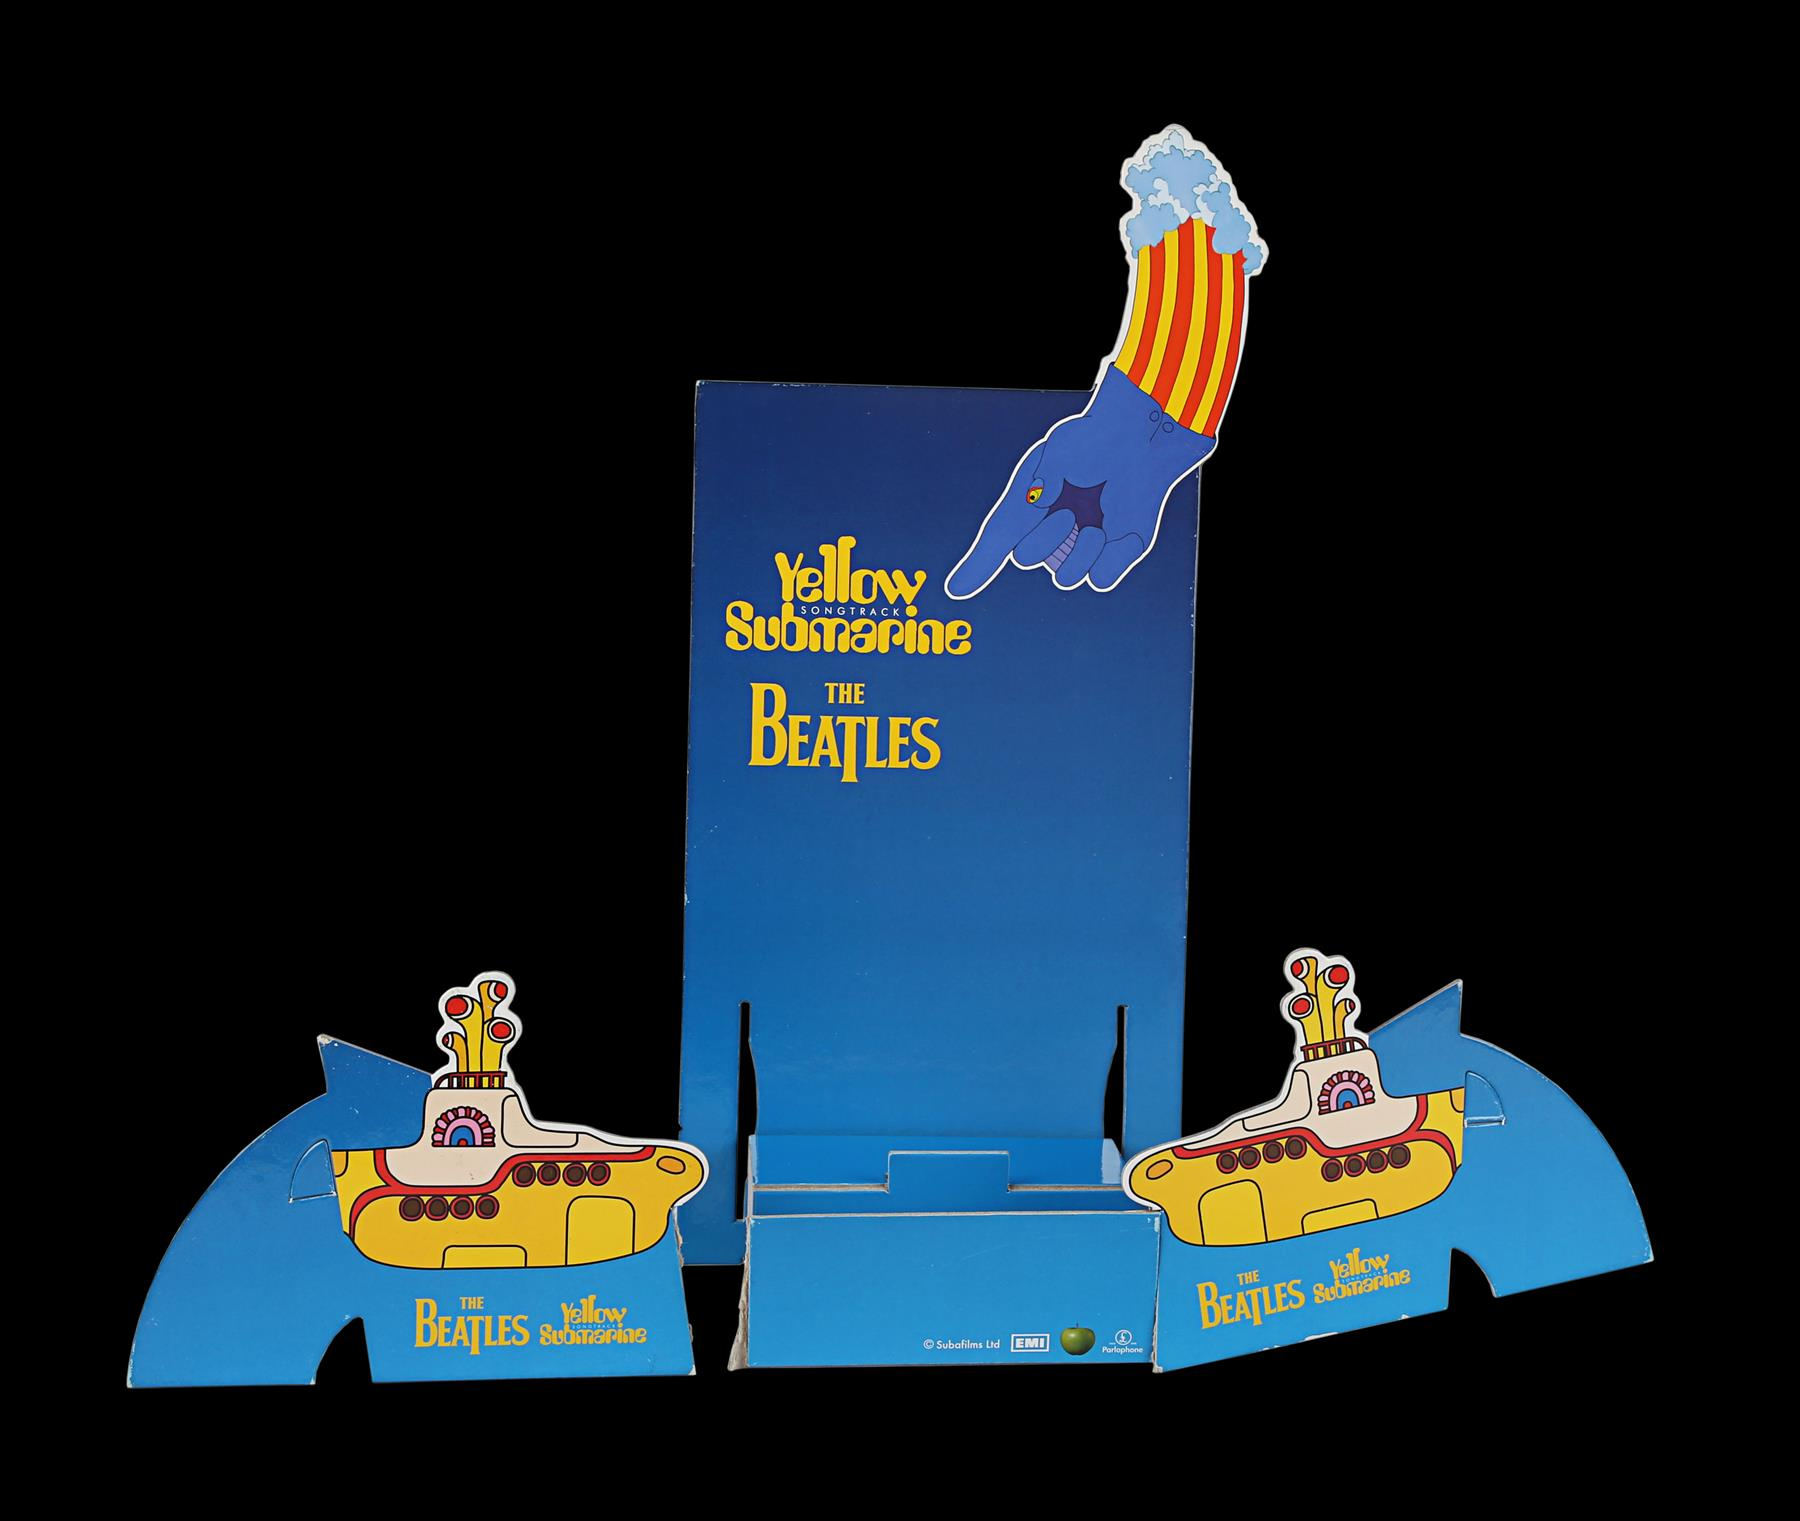 YELLOW SUBMARINE (1968) - Promotional and Marketing Items, 1999 - Image 6 of 9